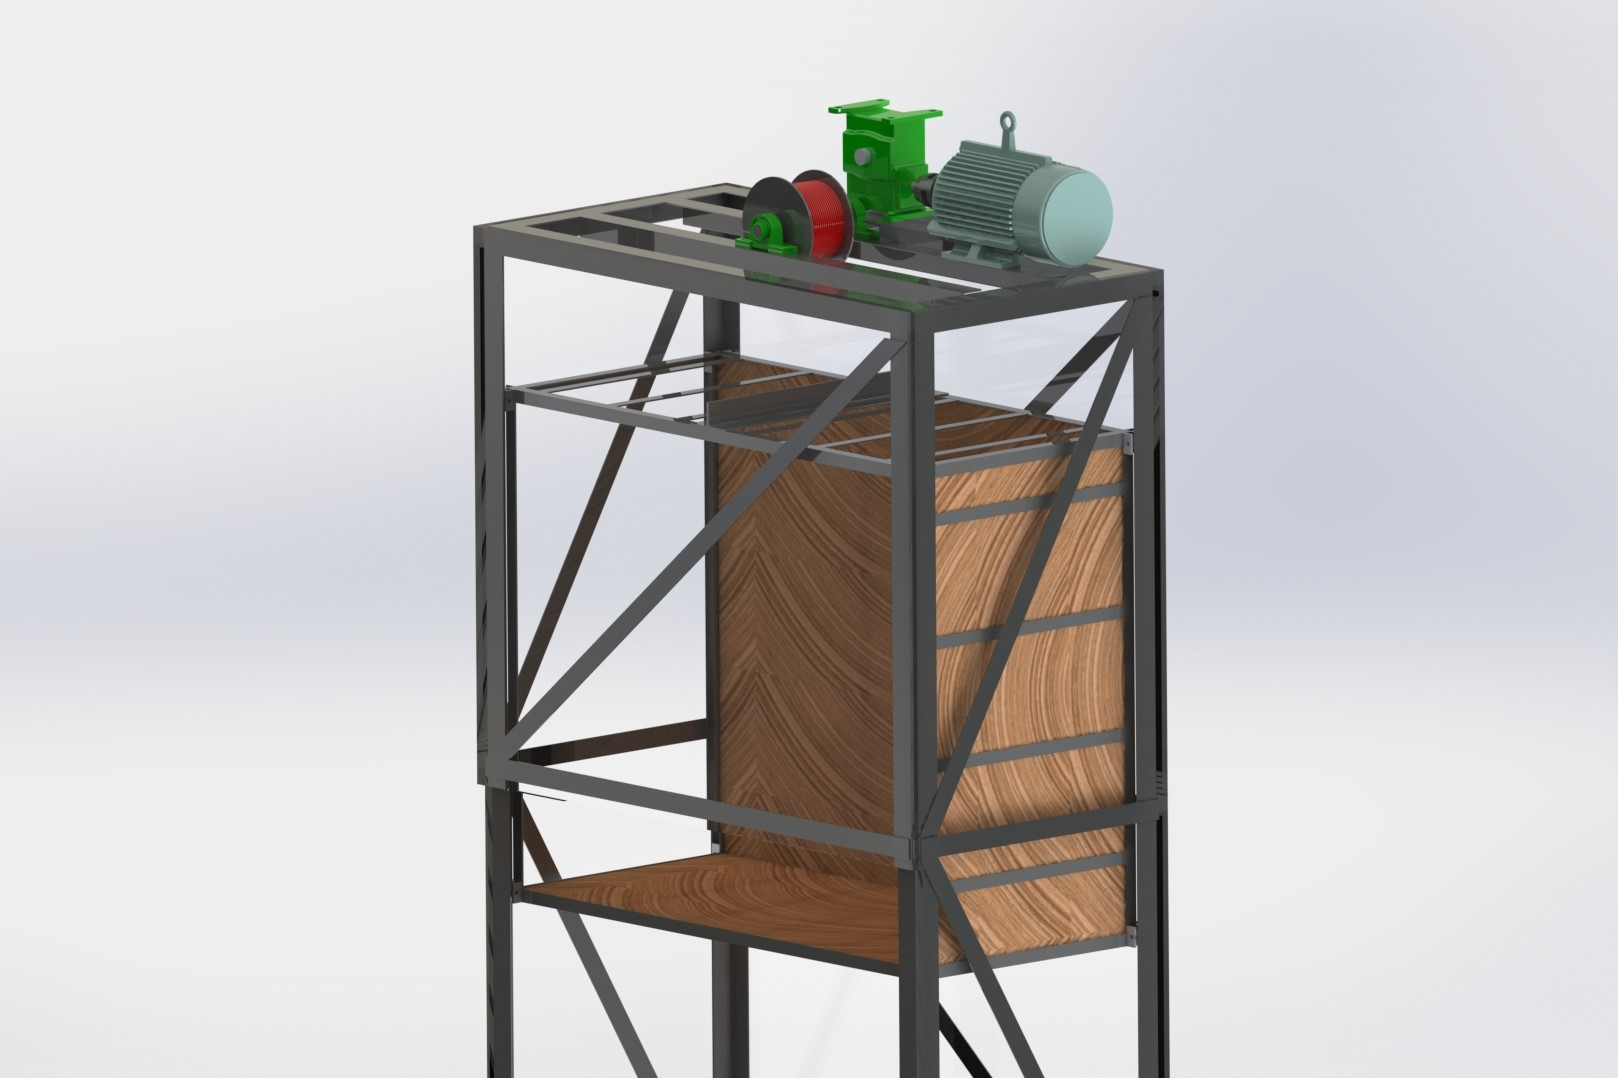 Dumb Waiter (Food trolley lift)